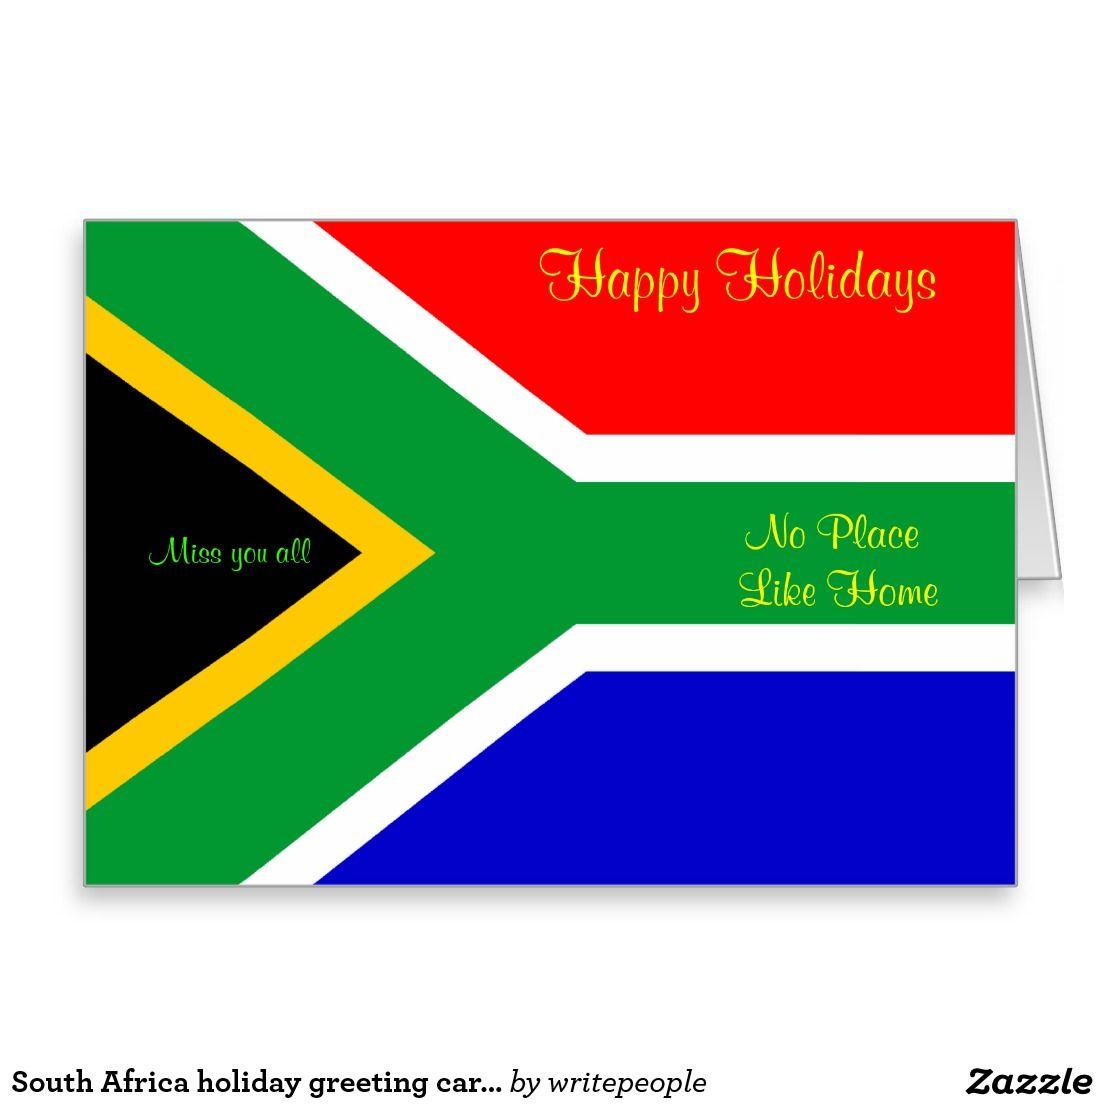 South Africa Holiday Greeting Cards South Africa Holidays Holiday